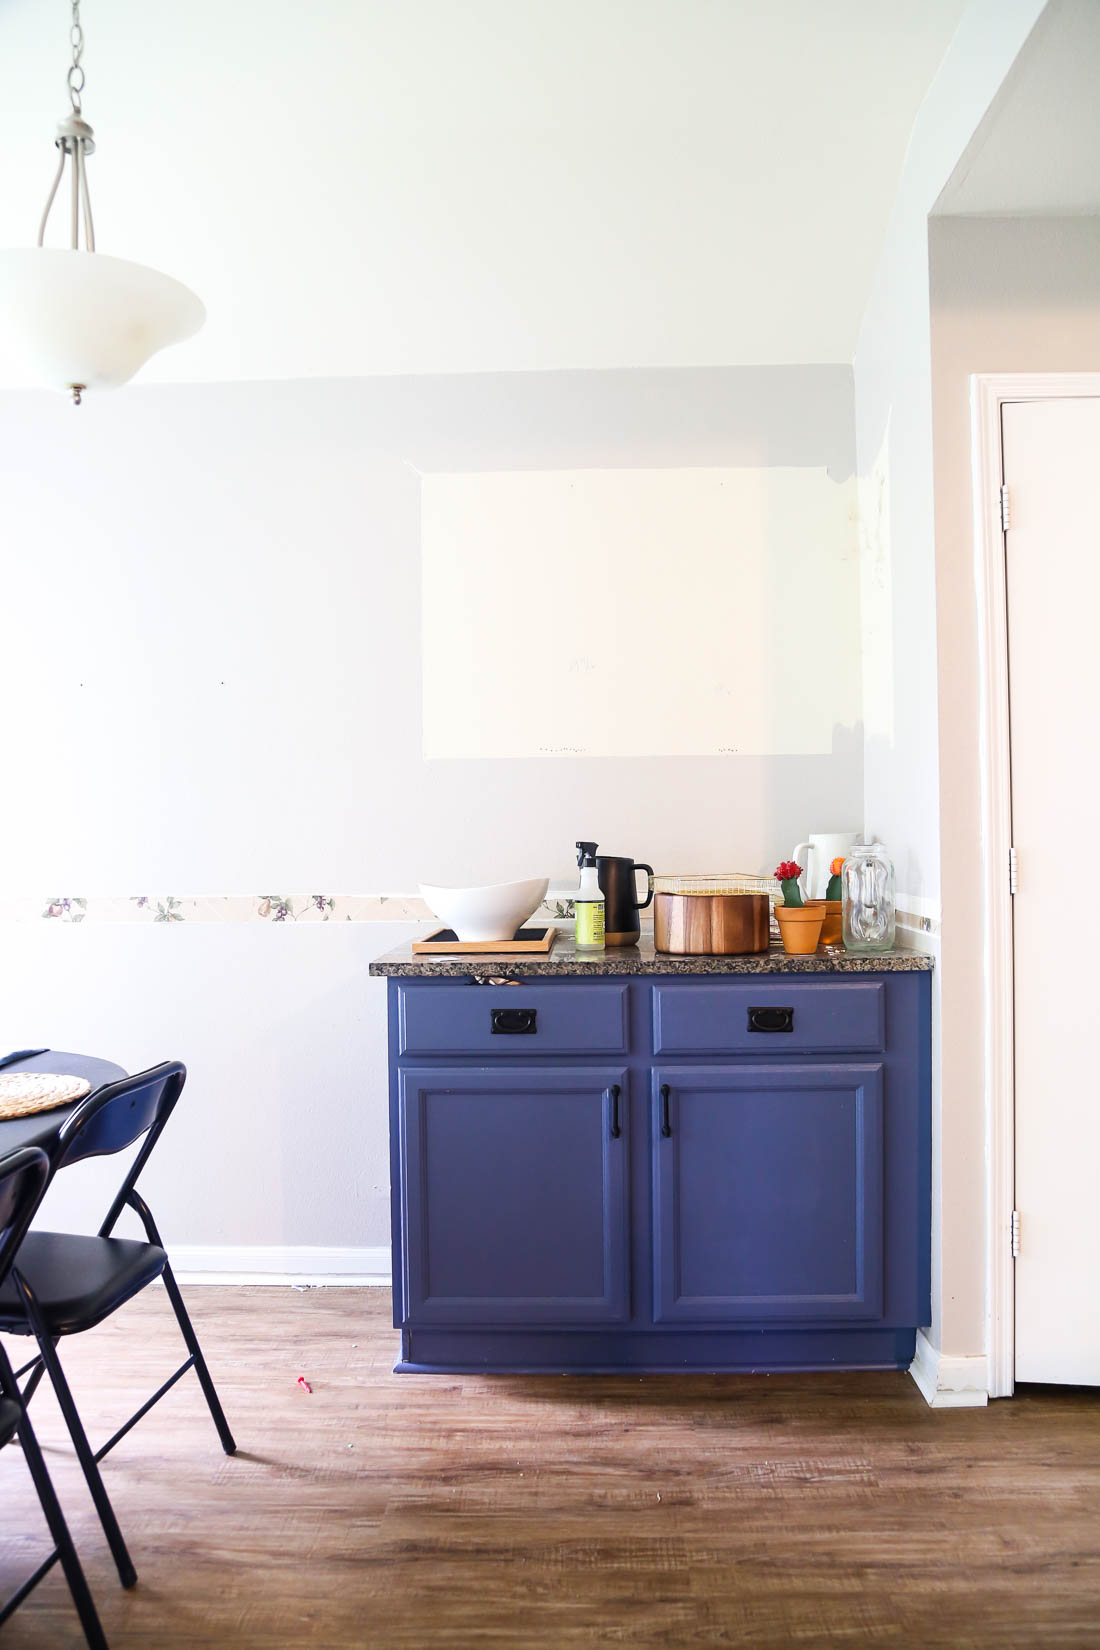 This blue kitchen cabinet has a hidden trash can!